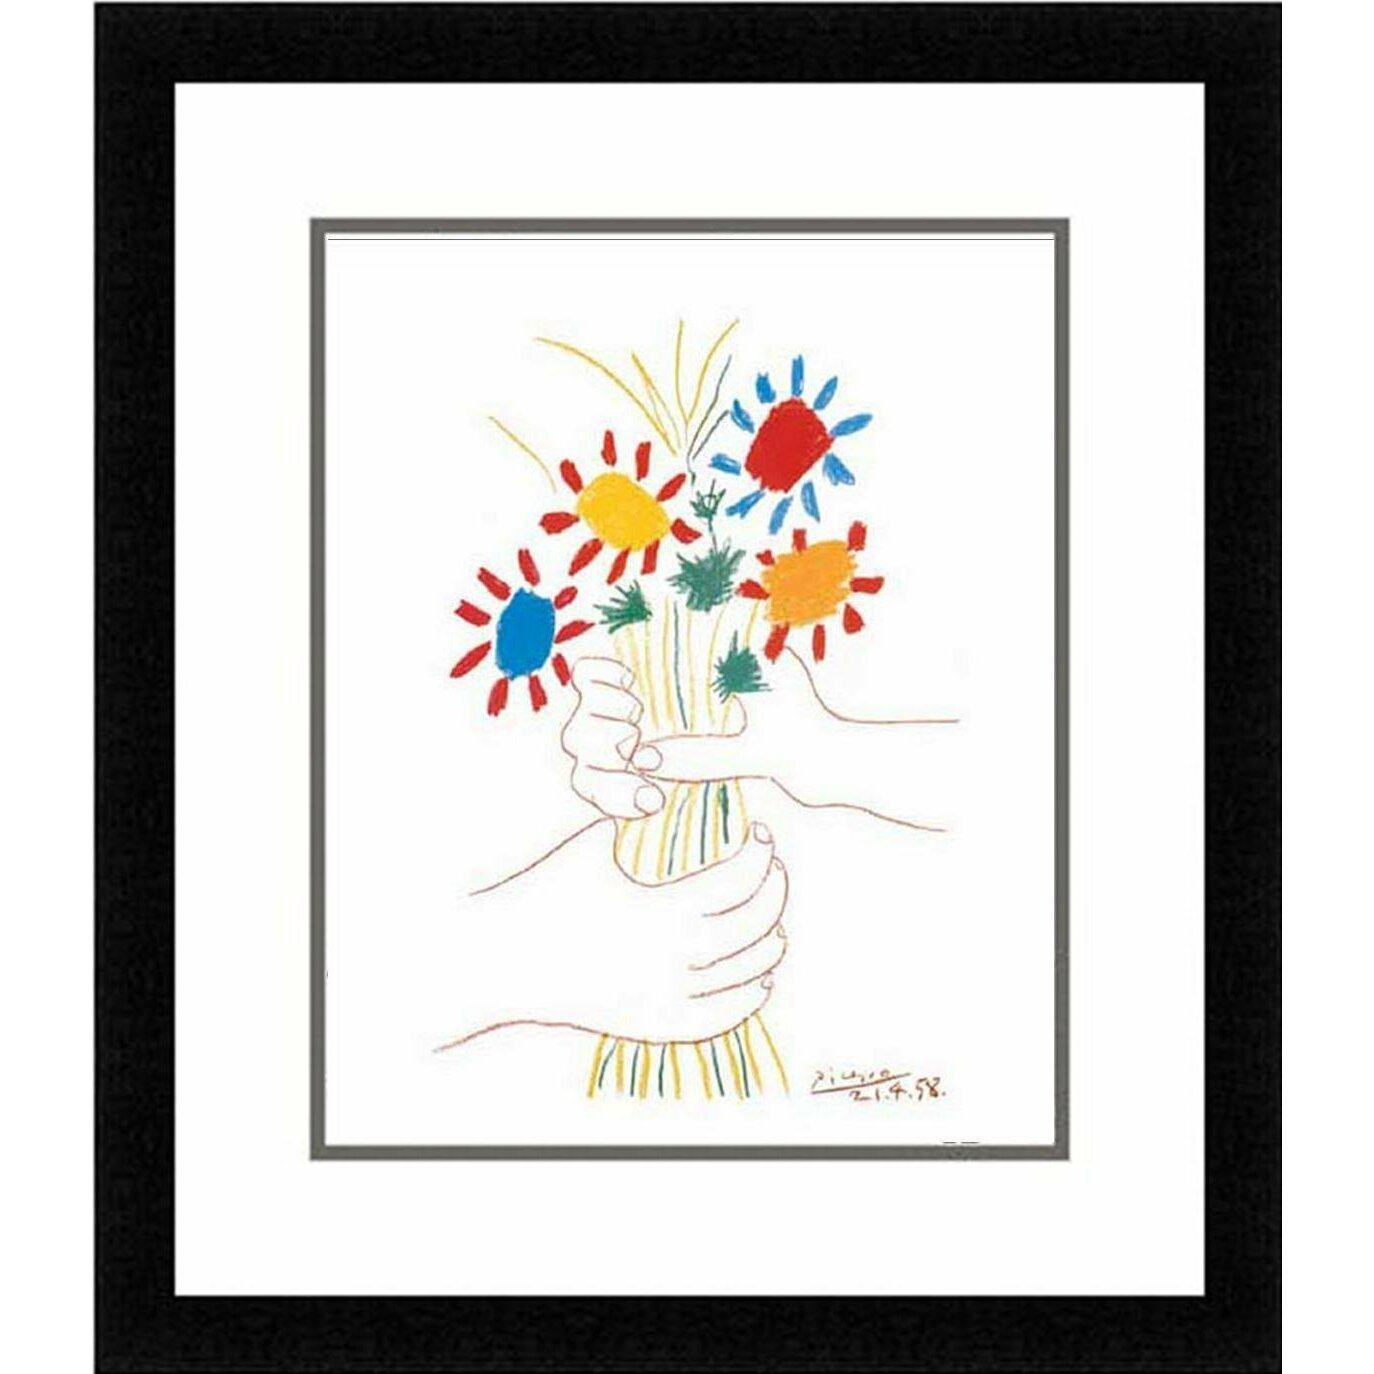 Buy Art For Less Petite Fleurs By Pablo Picasso Framed